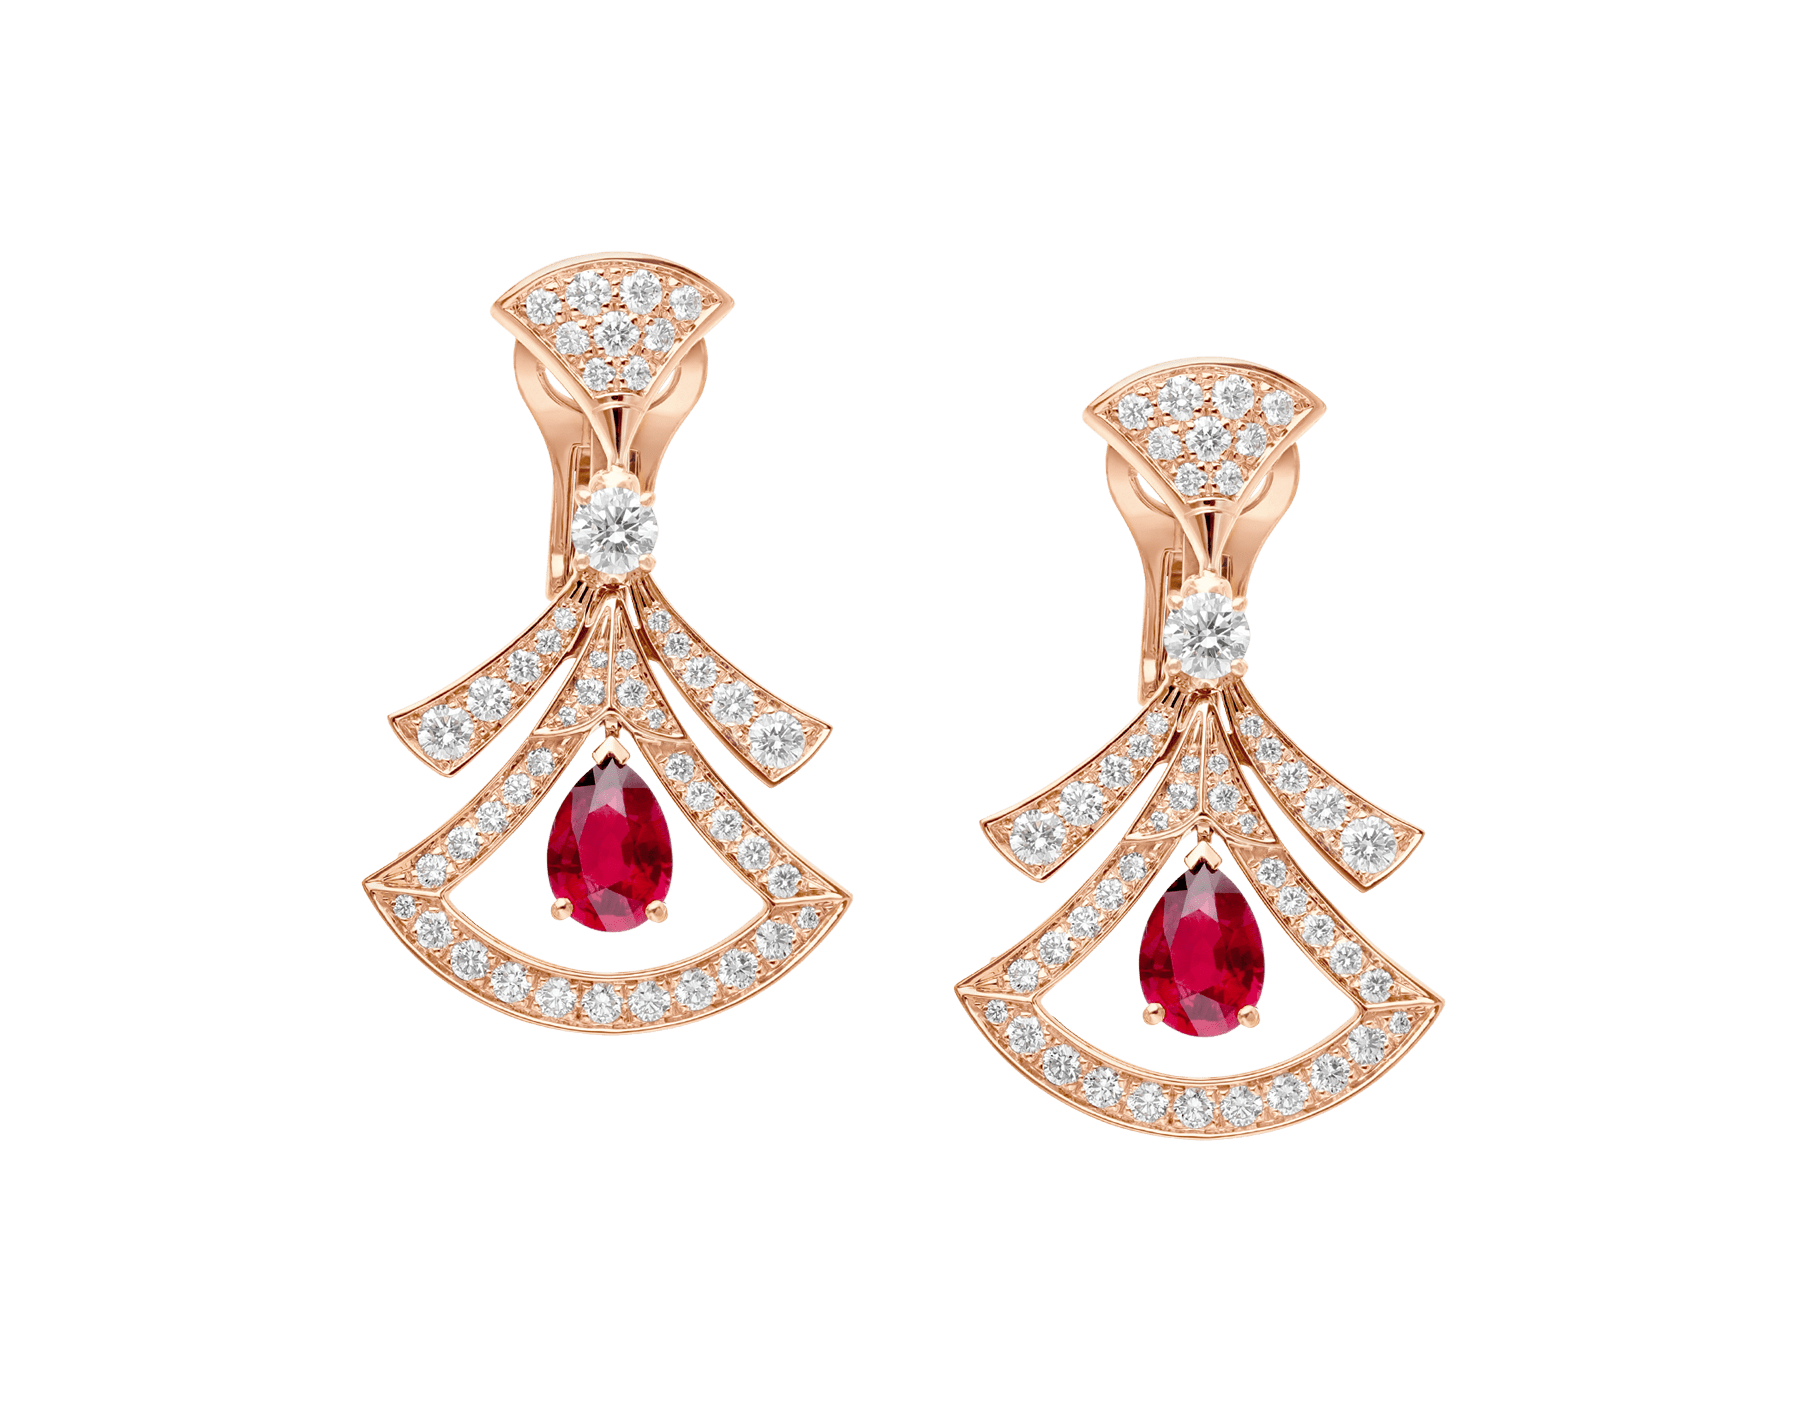 DIVAS' DREAM 18 kt rose gold openwork earrings, set with pear-shaped rubies, round brilliant-cut and pavé diamonds. 356954 image 1